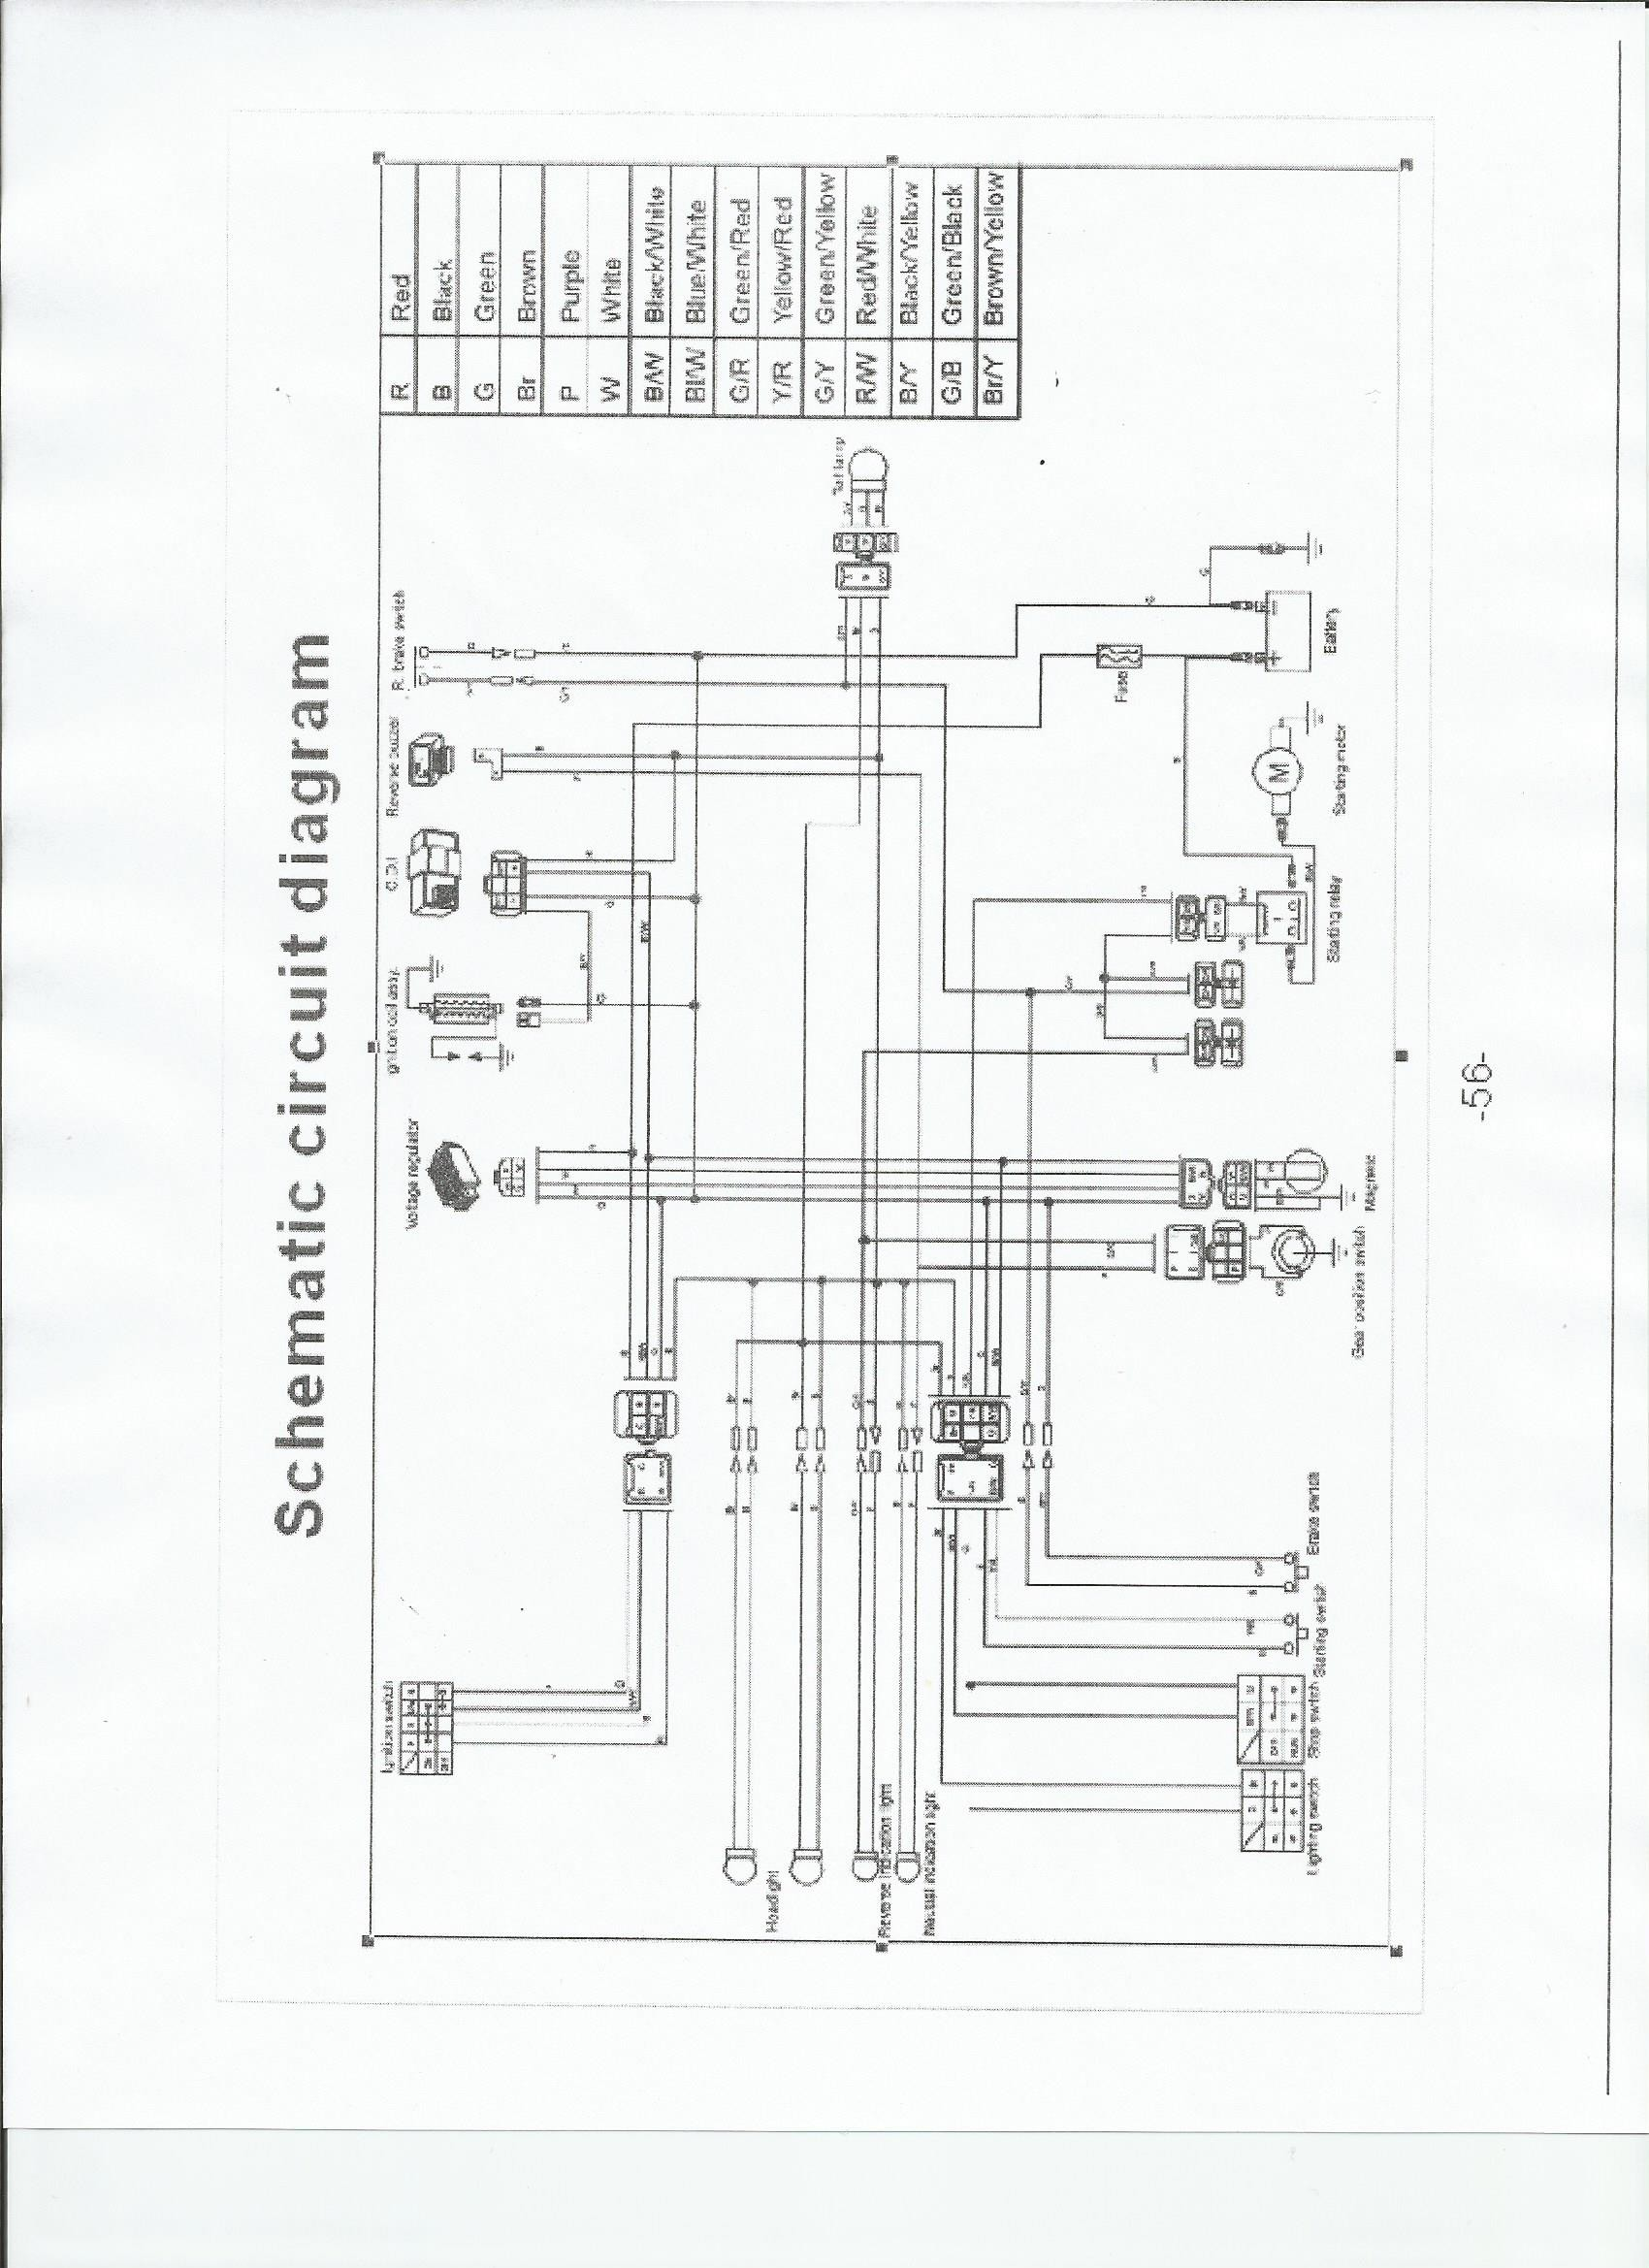 Timberwolf 250 Atv Wiring Diagram